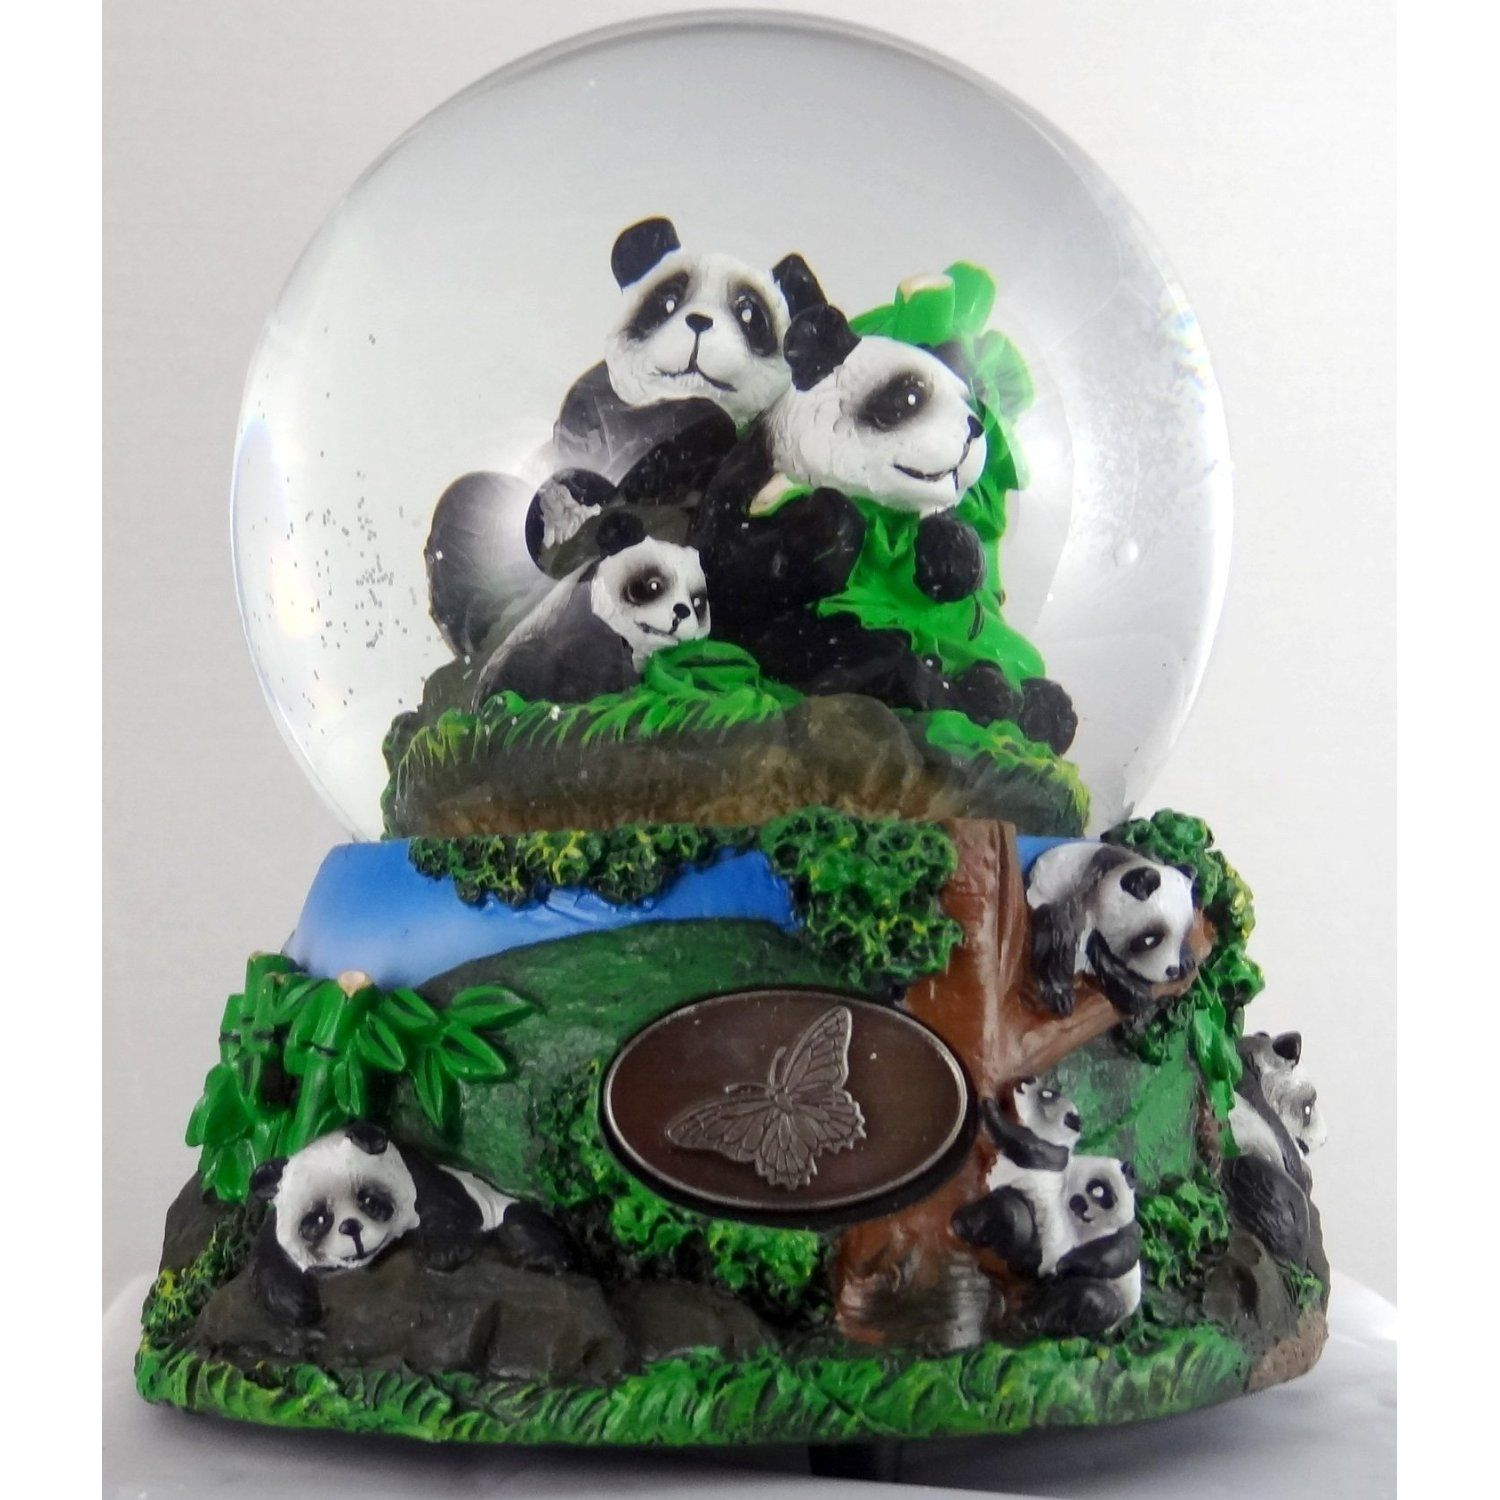 panda bean bag chair cover rentals yonkers ny momma with baby family snow globe so cute